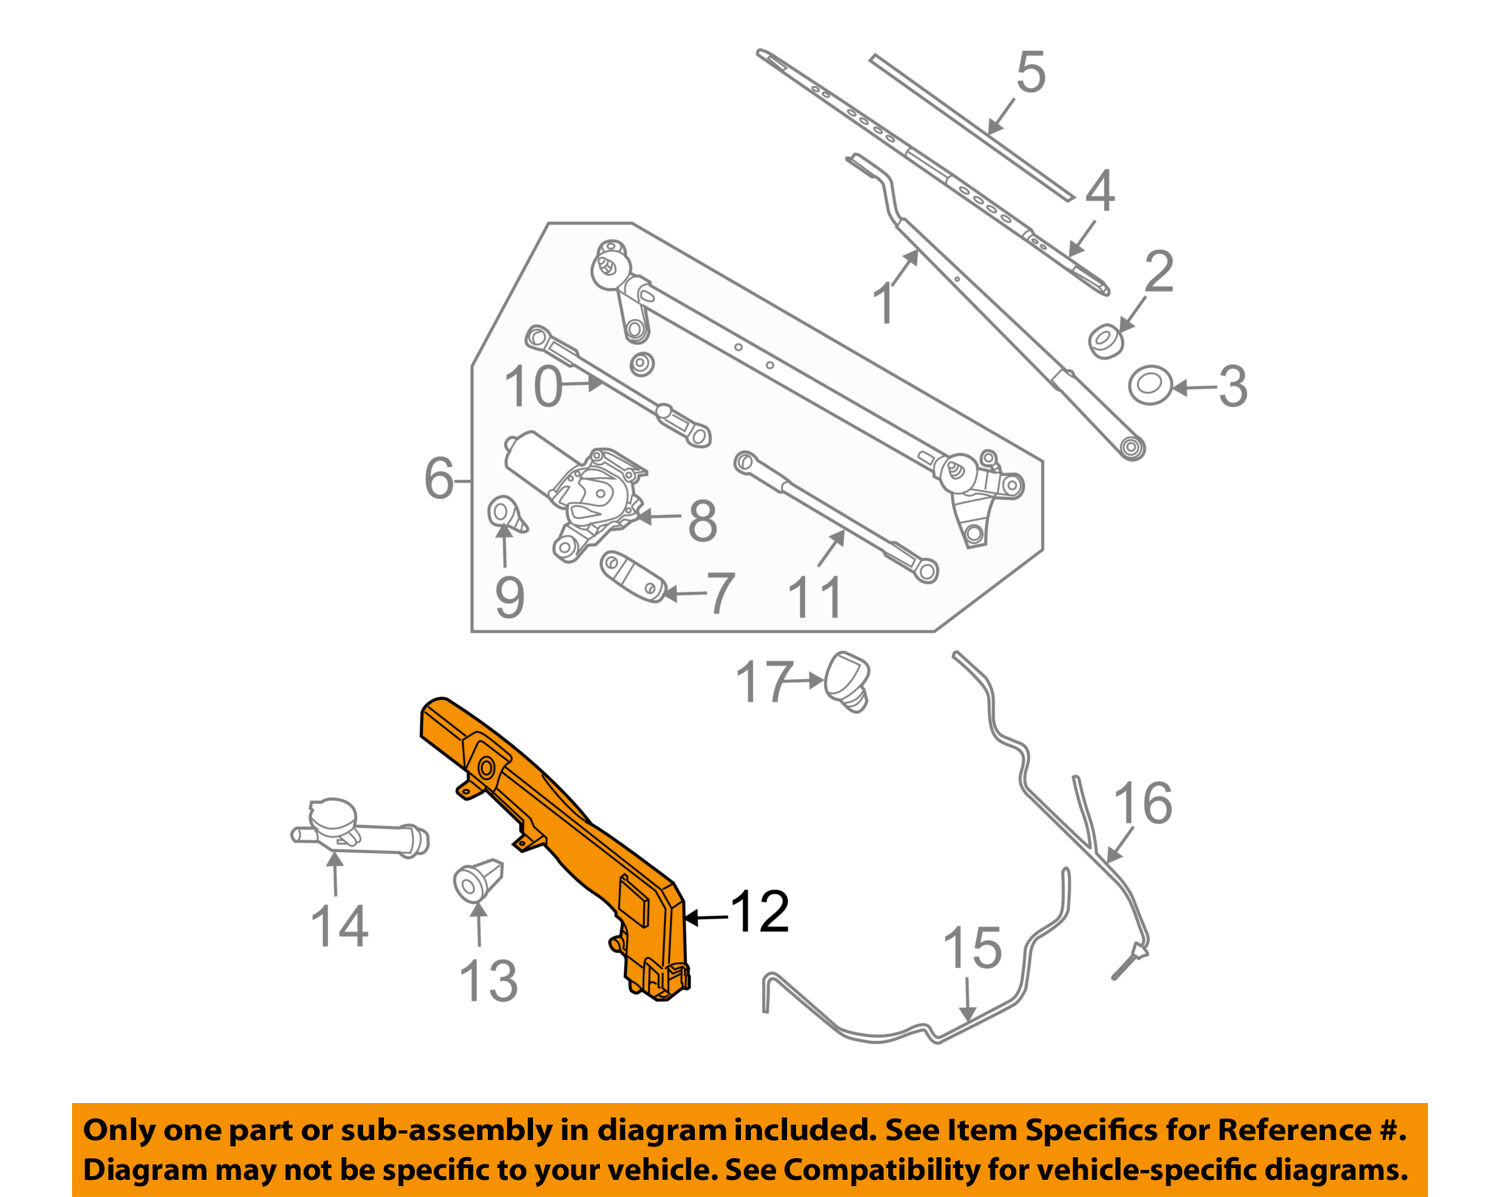 Nissan Sentra Service Manual: Wiper washer